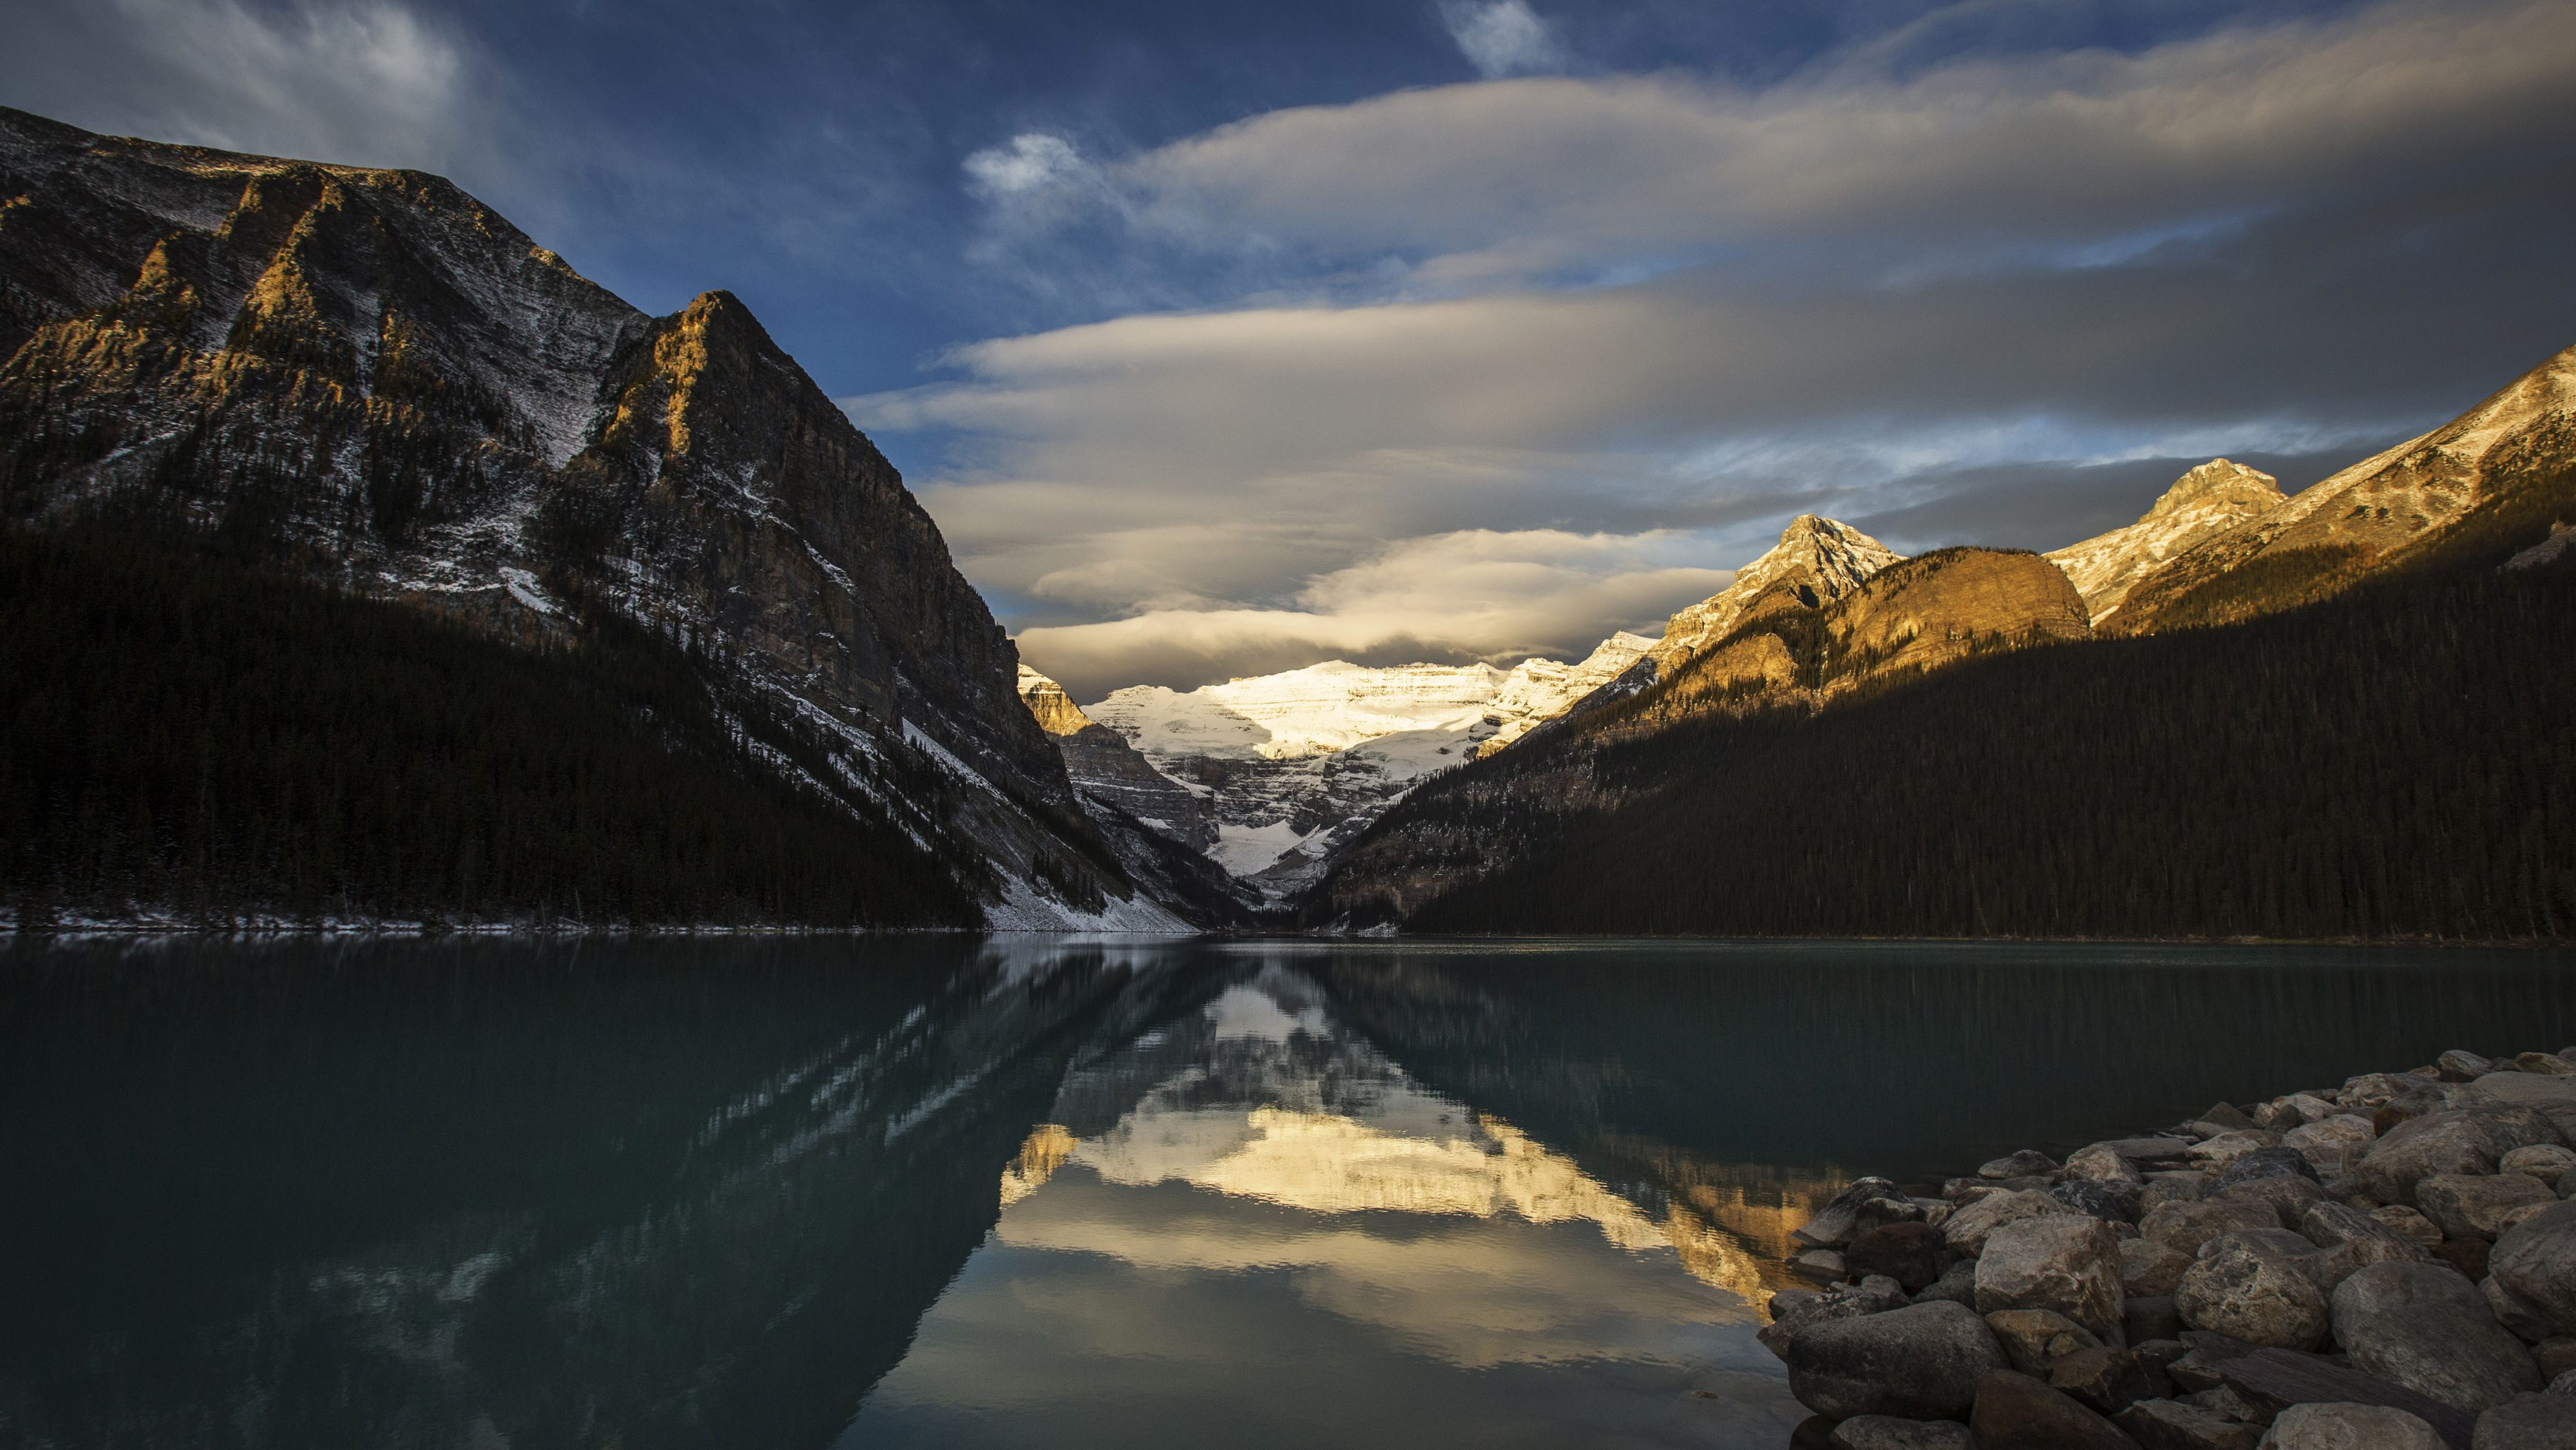 Lake Louise is pictured at Banff National Park, in the Canadian Rocky Mountains outside the village of Lake Louise, Alberta, October 3, 2014.